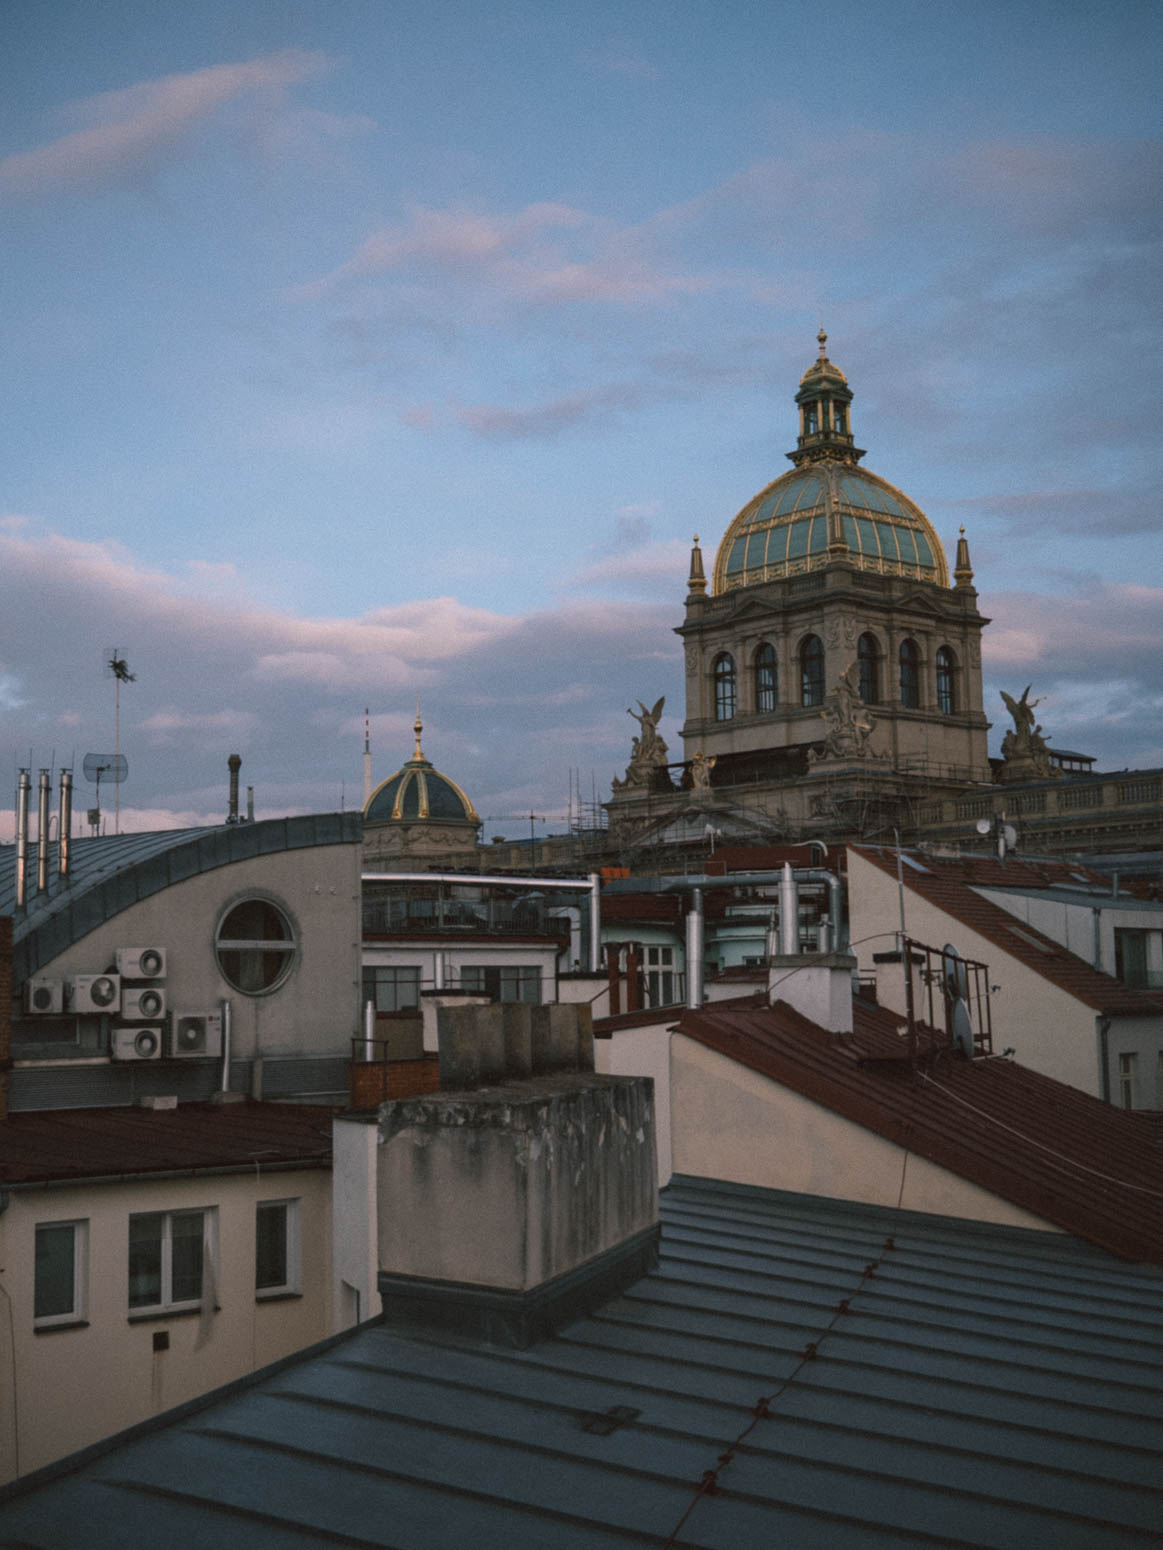 prag-praha-prague-travel-city-visit-street-old-town-rooftop-roof-national-gallery